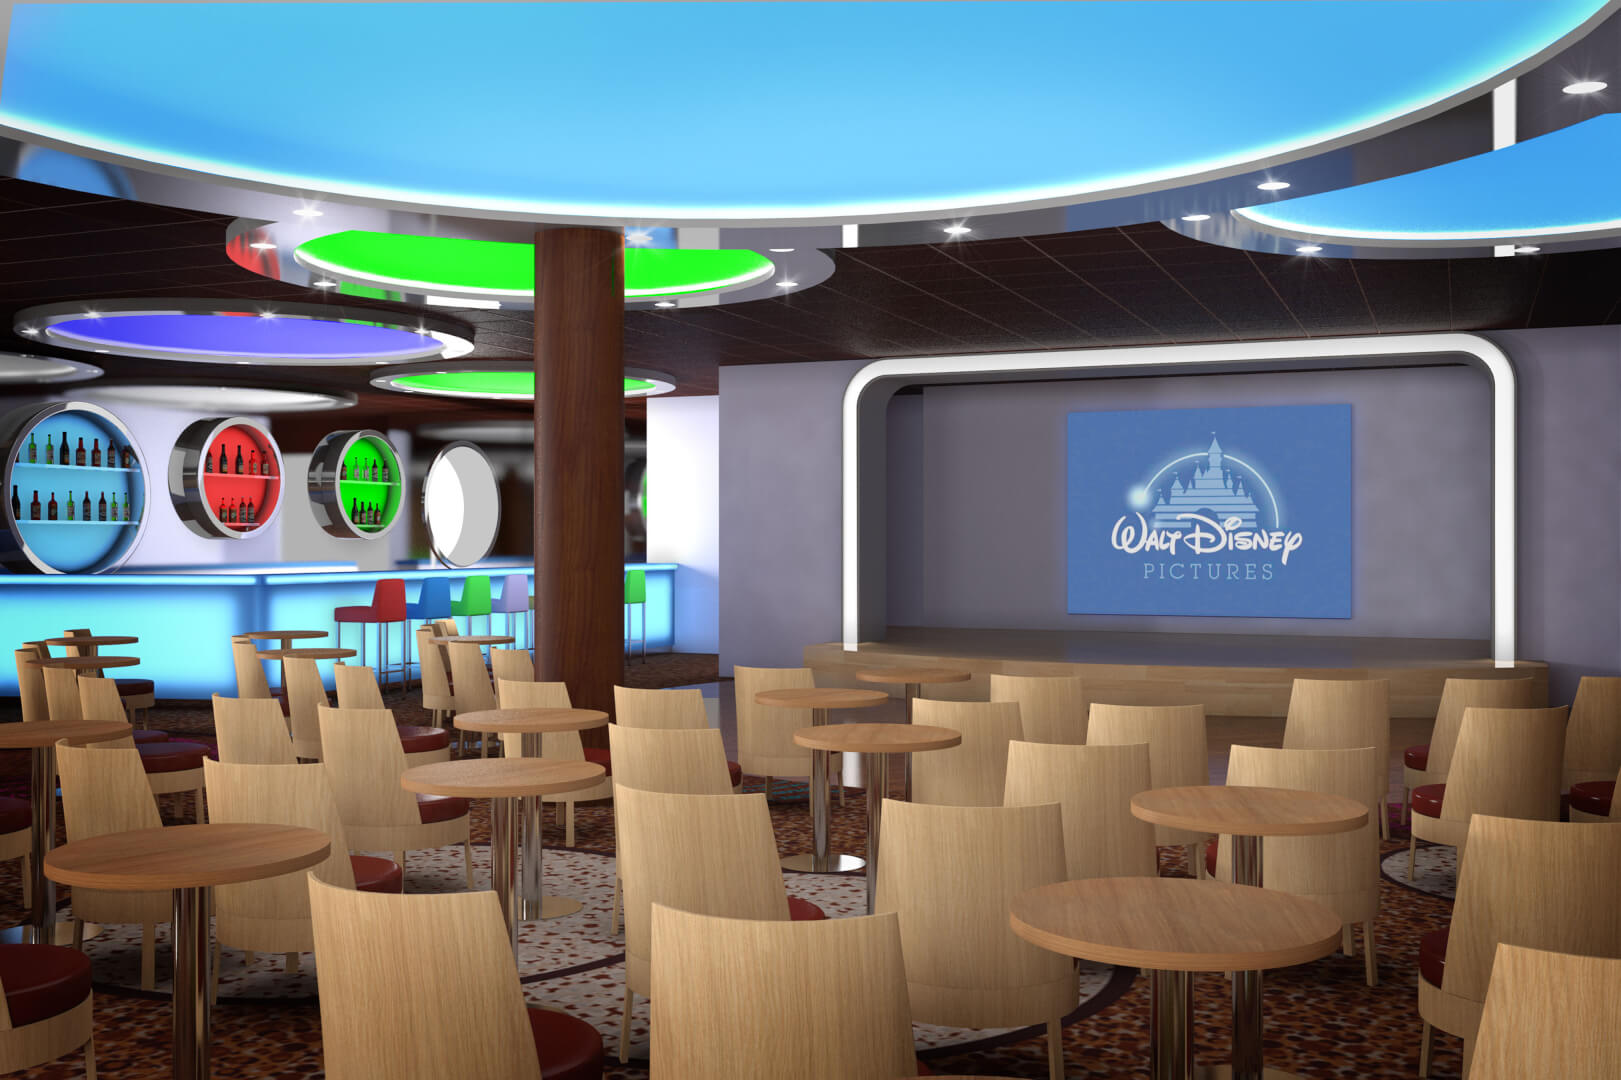 Disney Magic Cruise Ship Upgrades Announced With Aquadunk Drop Slide Marvel Kids Area Revamped